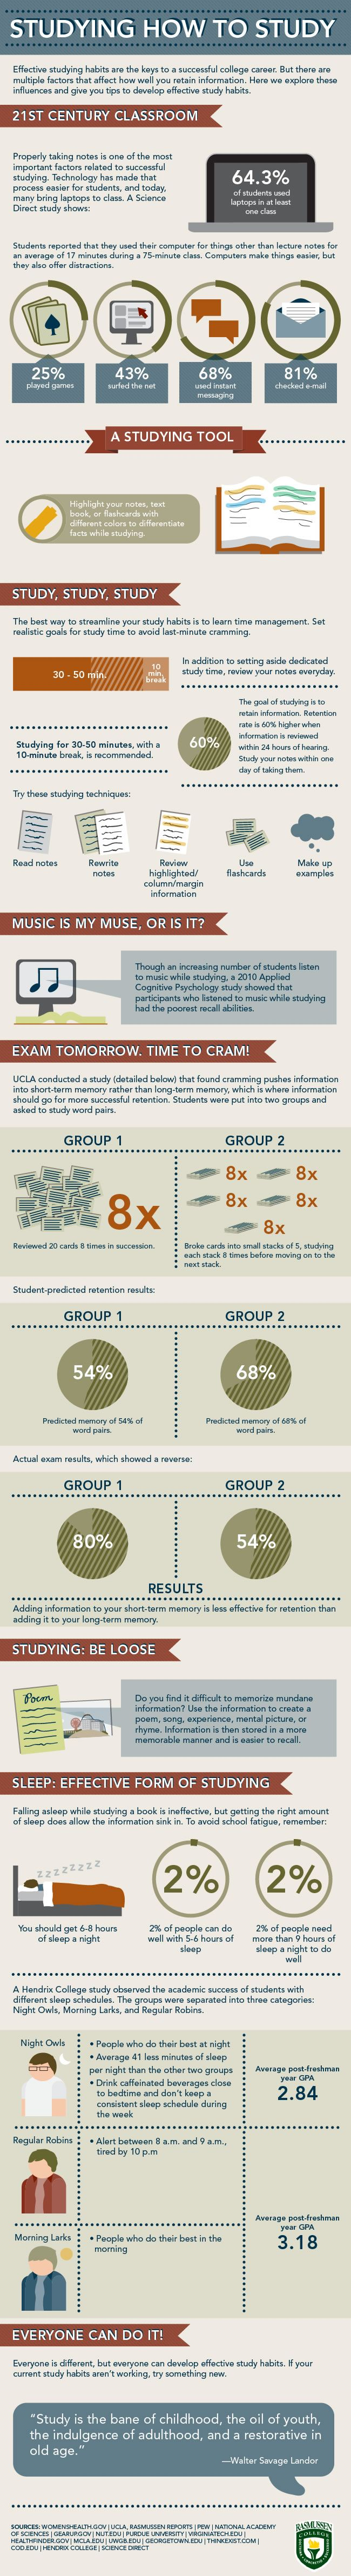 A study on how to study in high school and college. Great advice to get better grades and stress less!